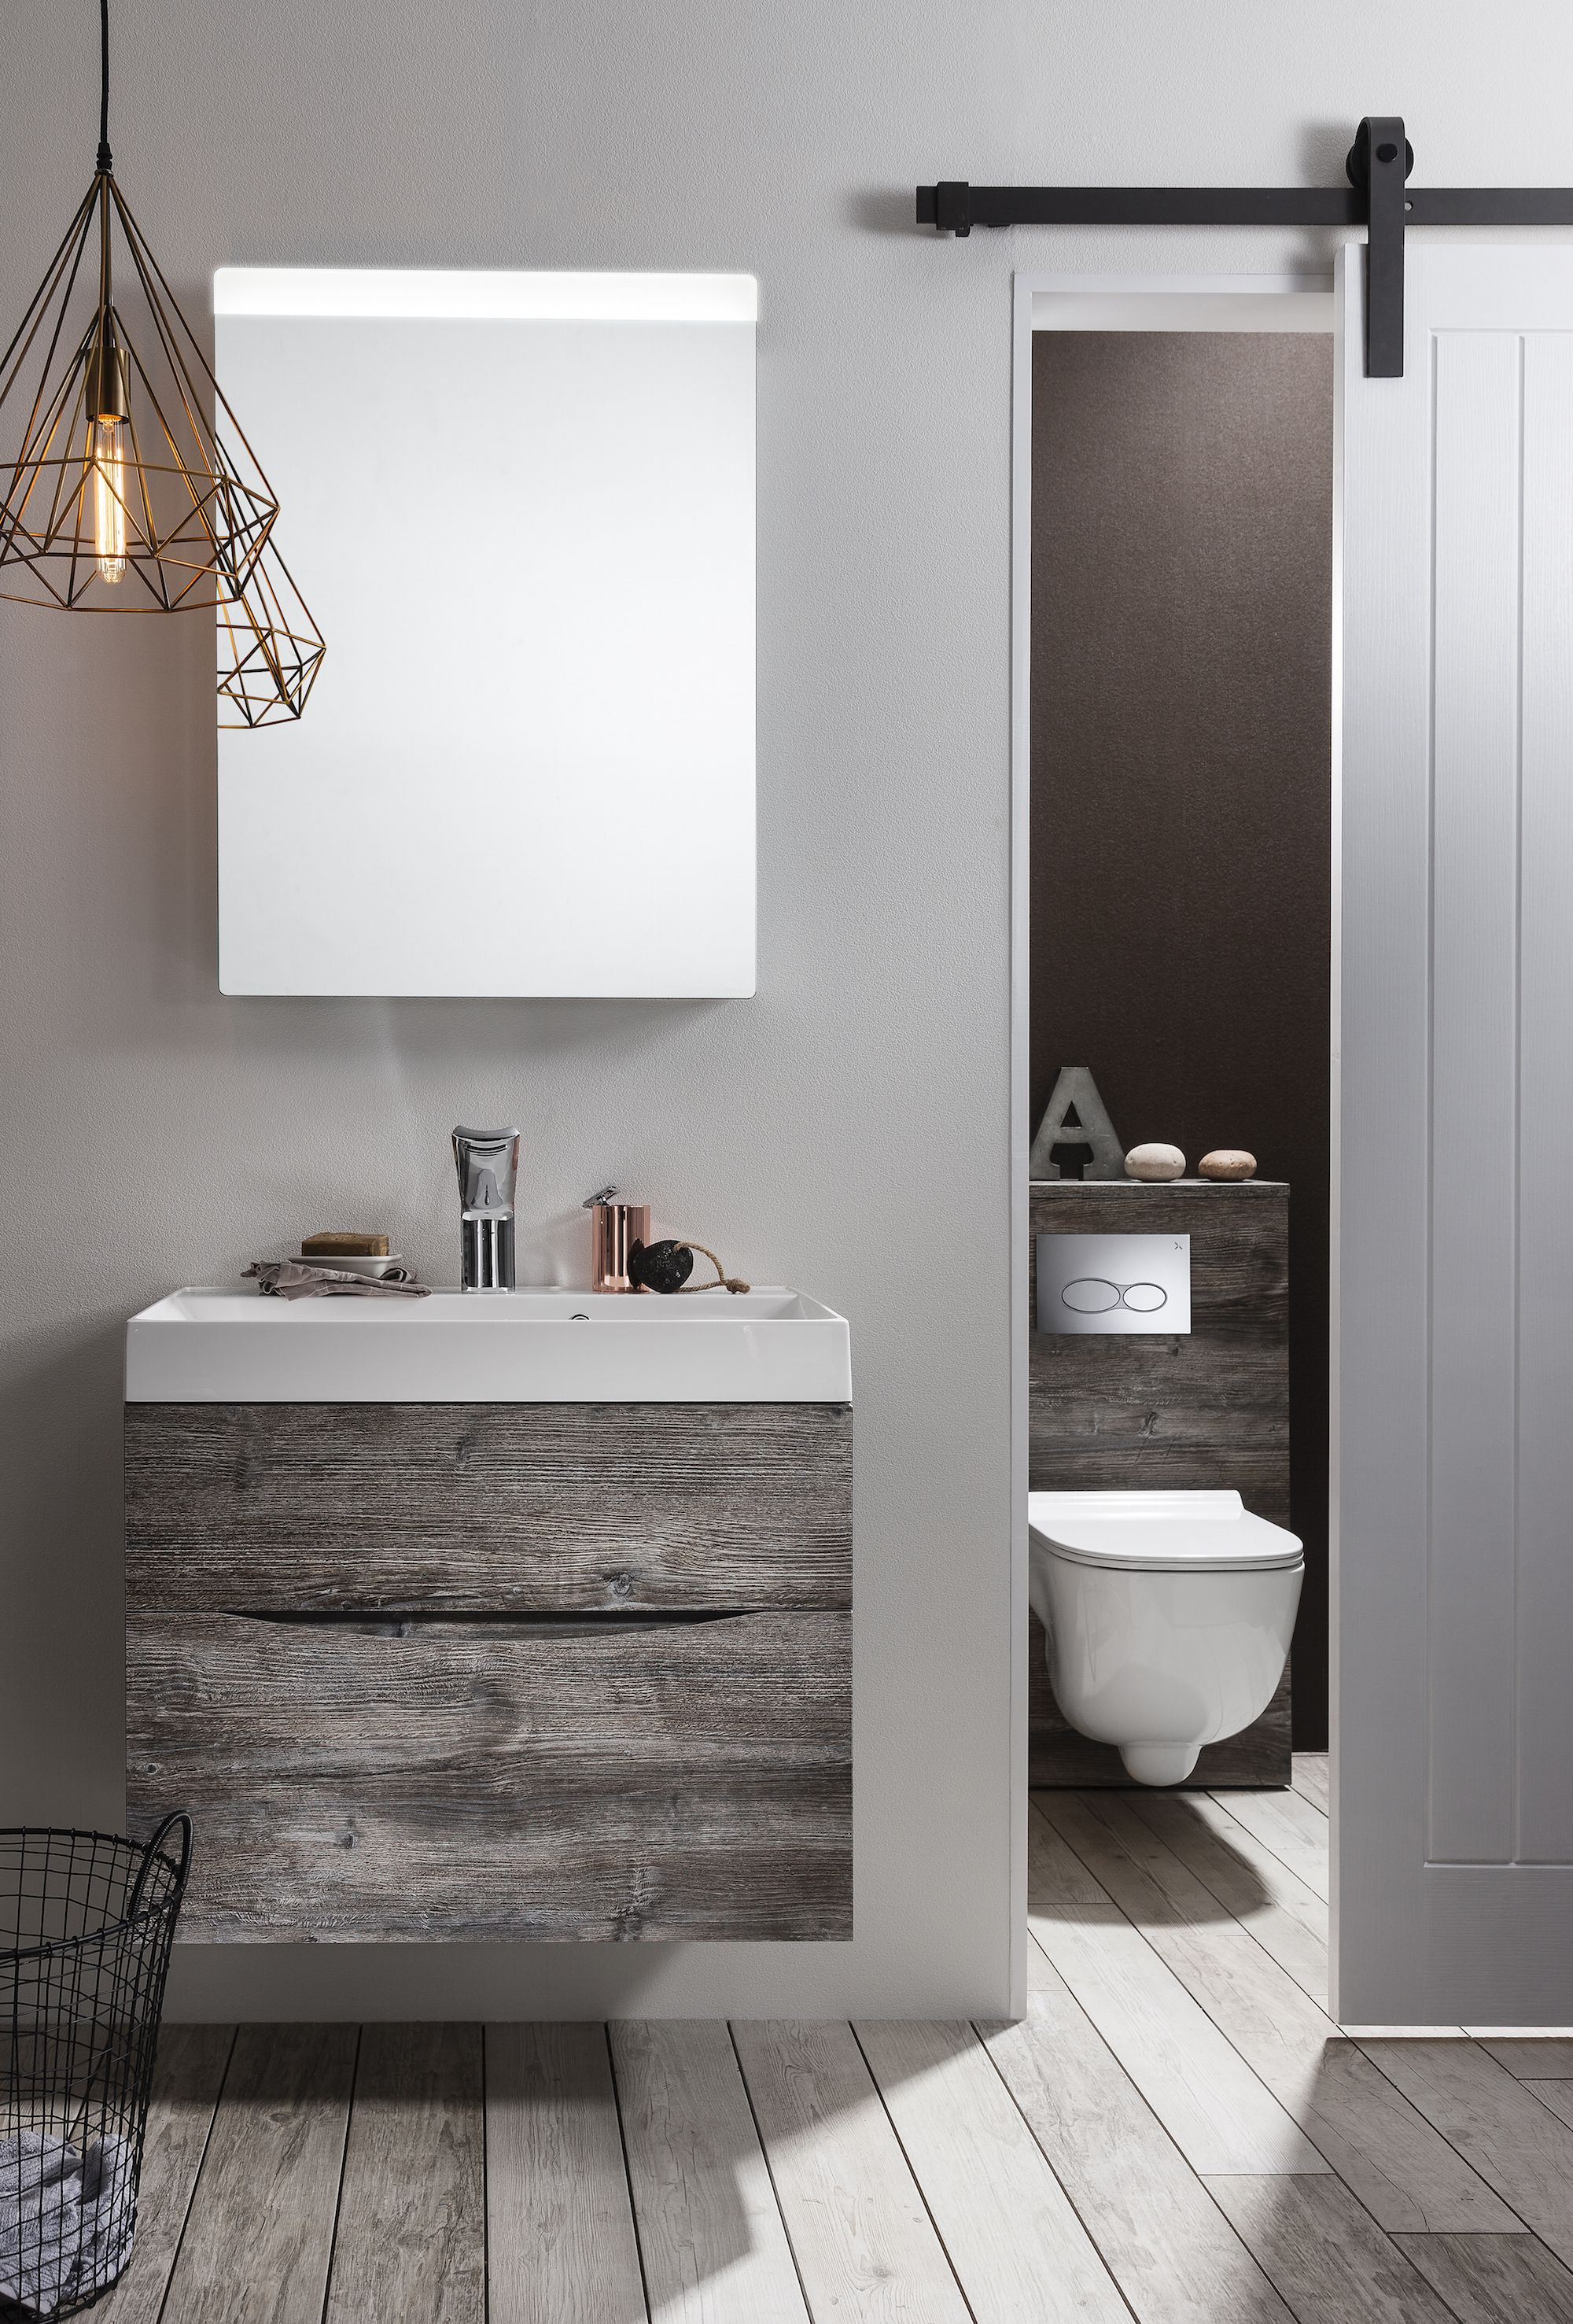 The Driftwood Finish Of Furniture From Bathroom Specialist Bauhaus Combines Sleek Lines With A Rough Luxe